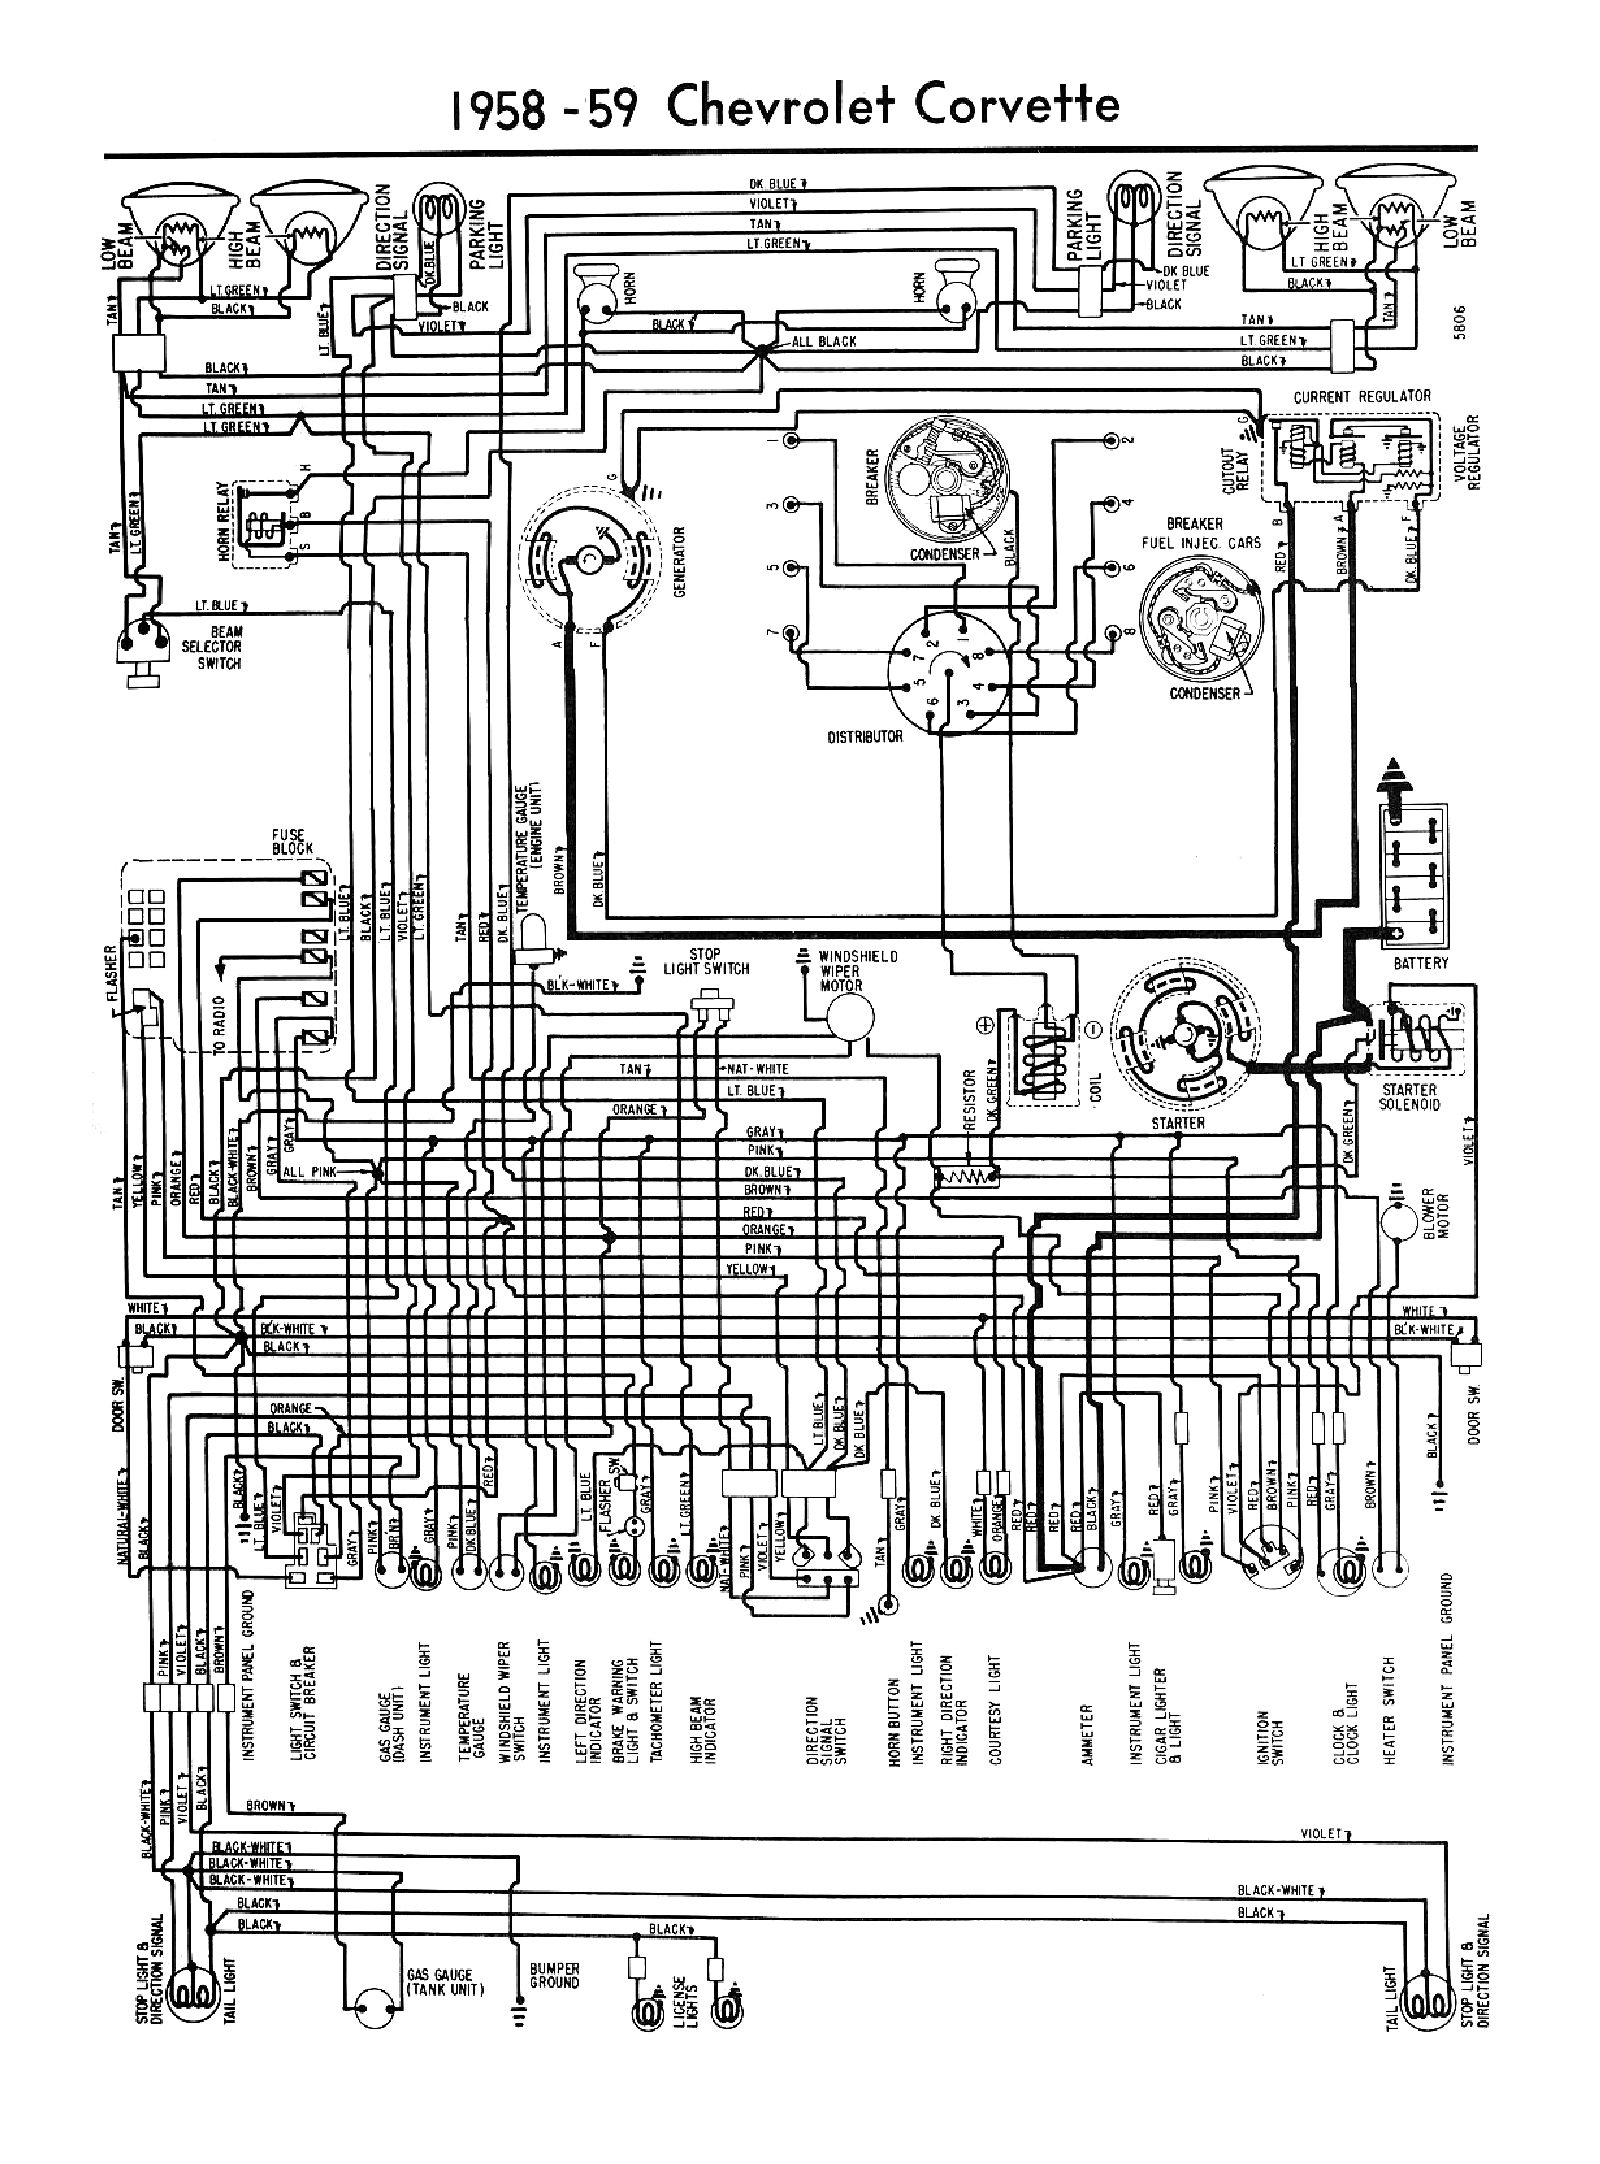 hight resolution of 1958 dodge wiring diagram wiring diagram third level dodge schematics 1958 dodge wiring diagram